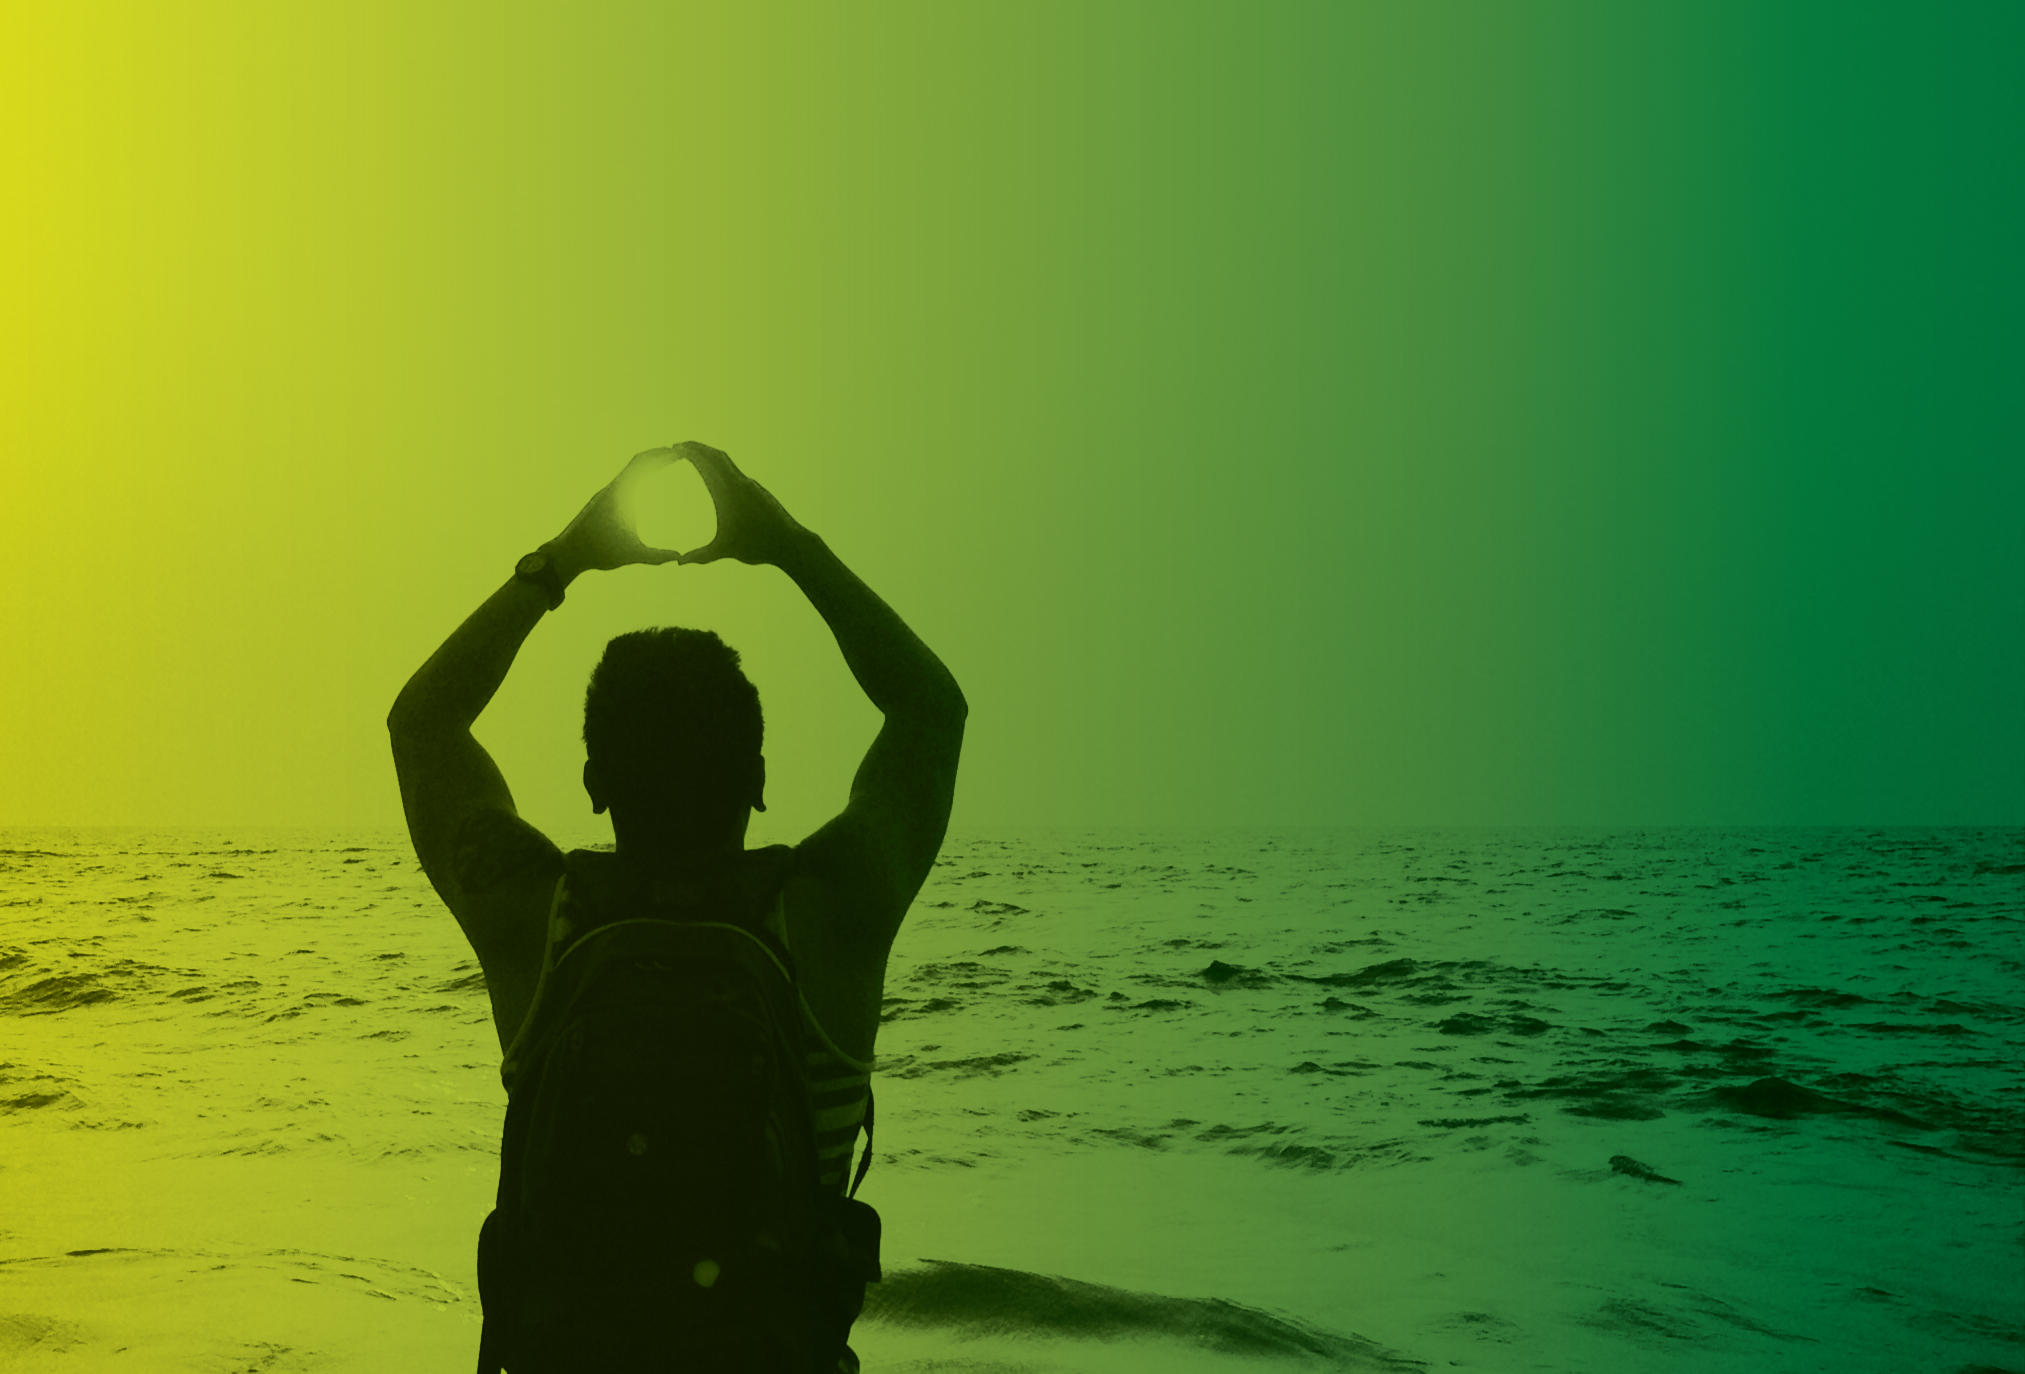 A person makes the O symbol with their hands against a backdrop of the ocean